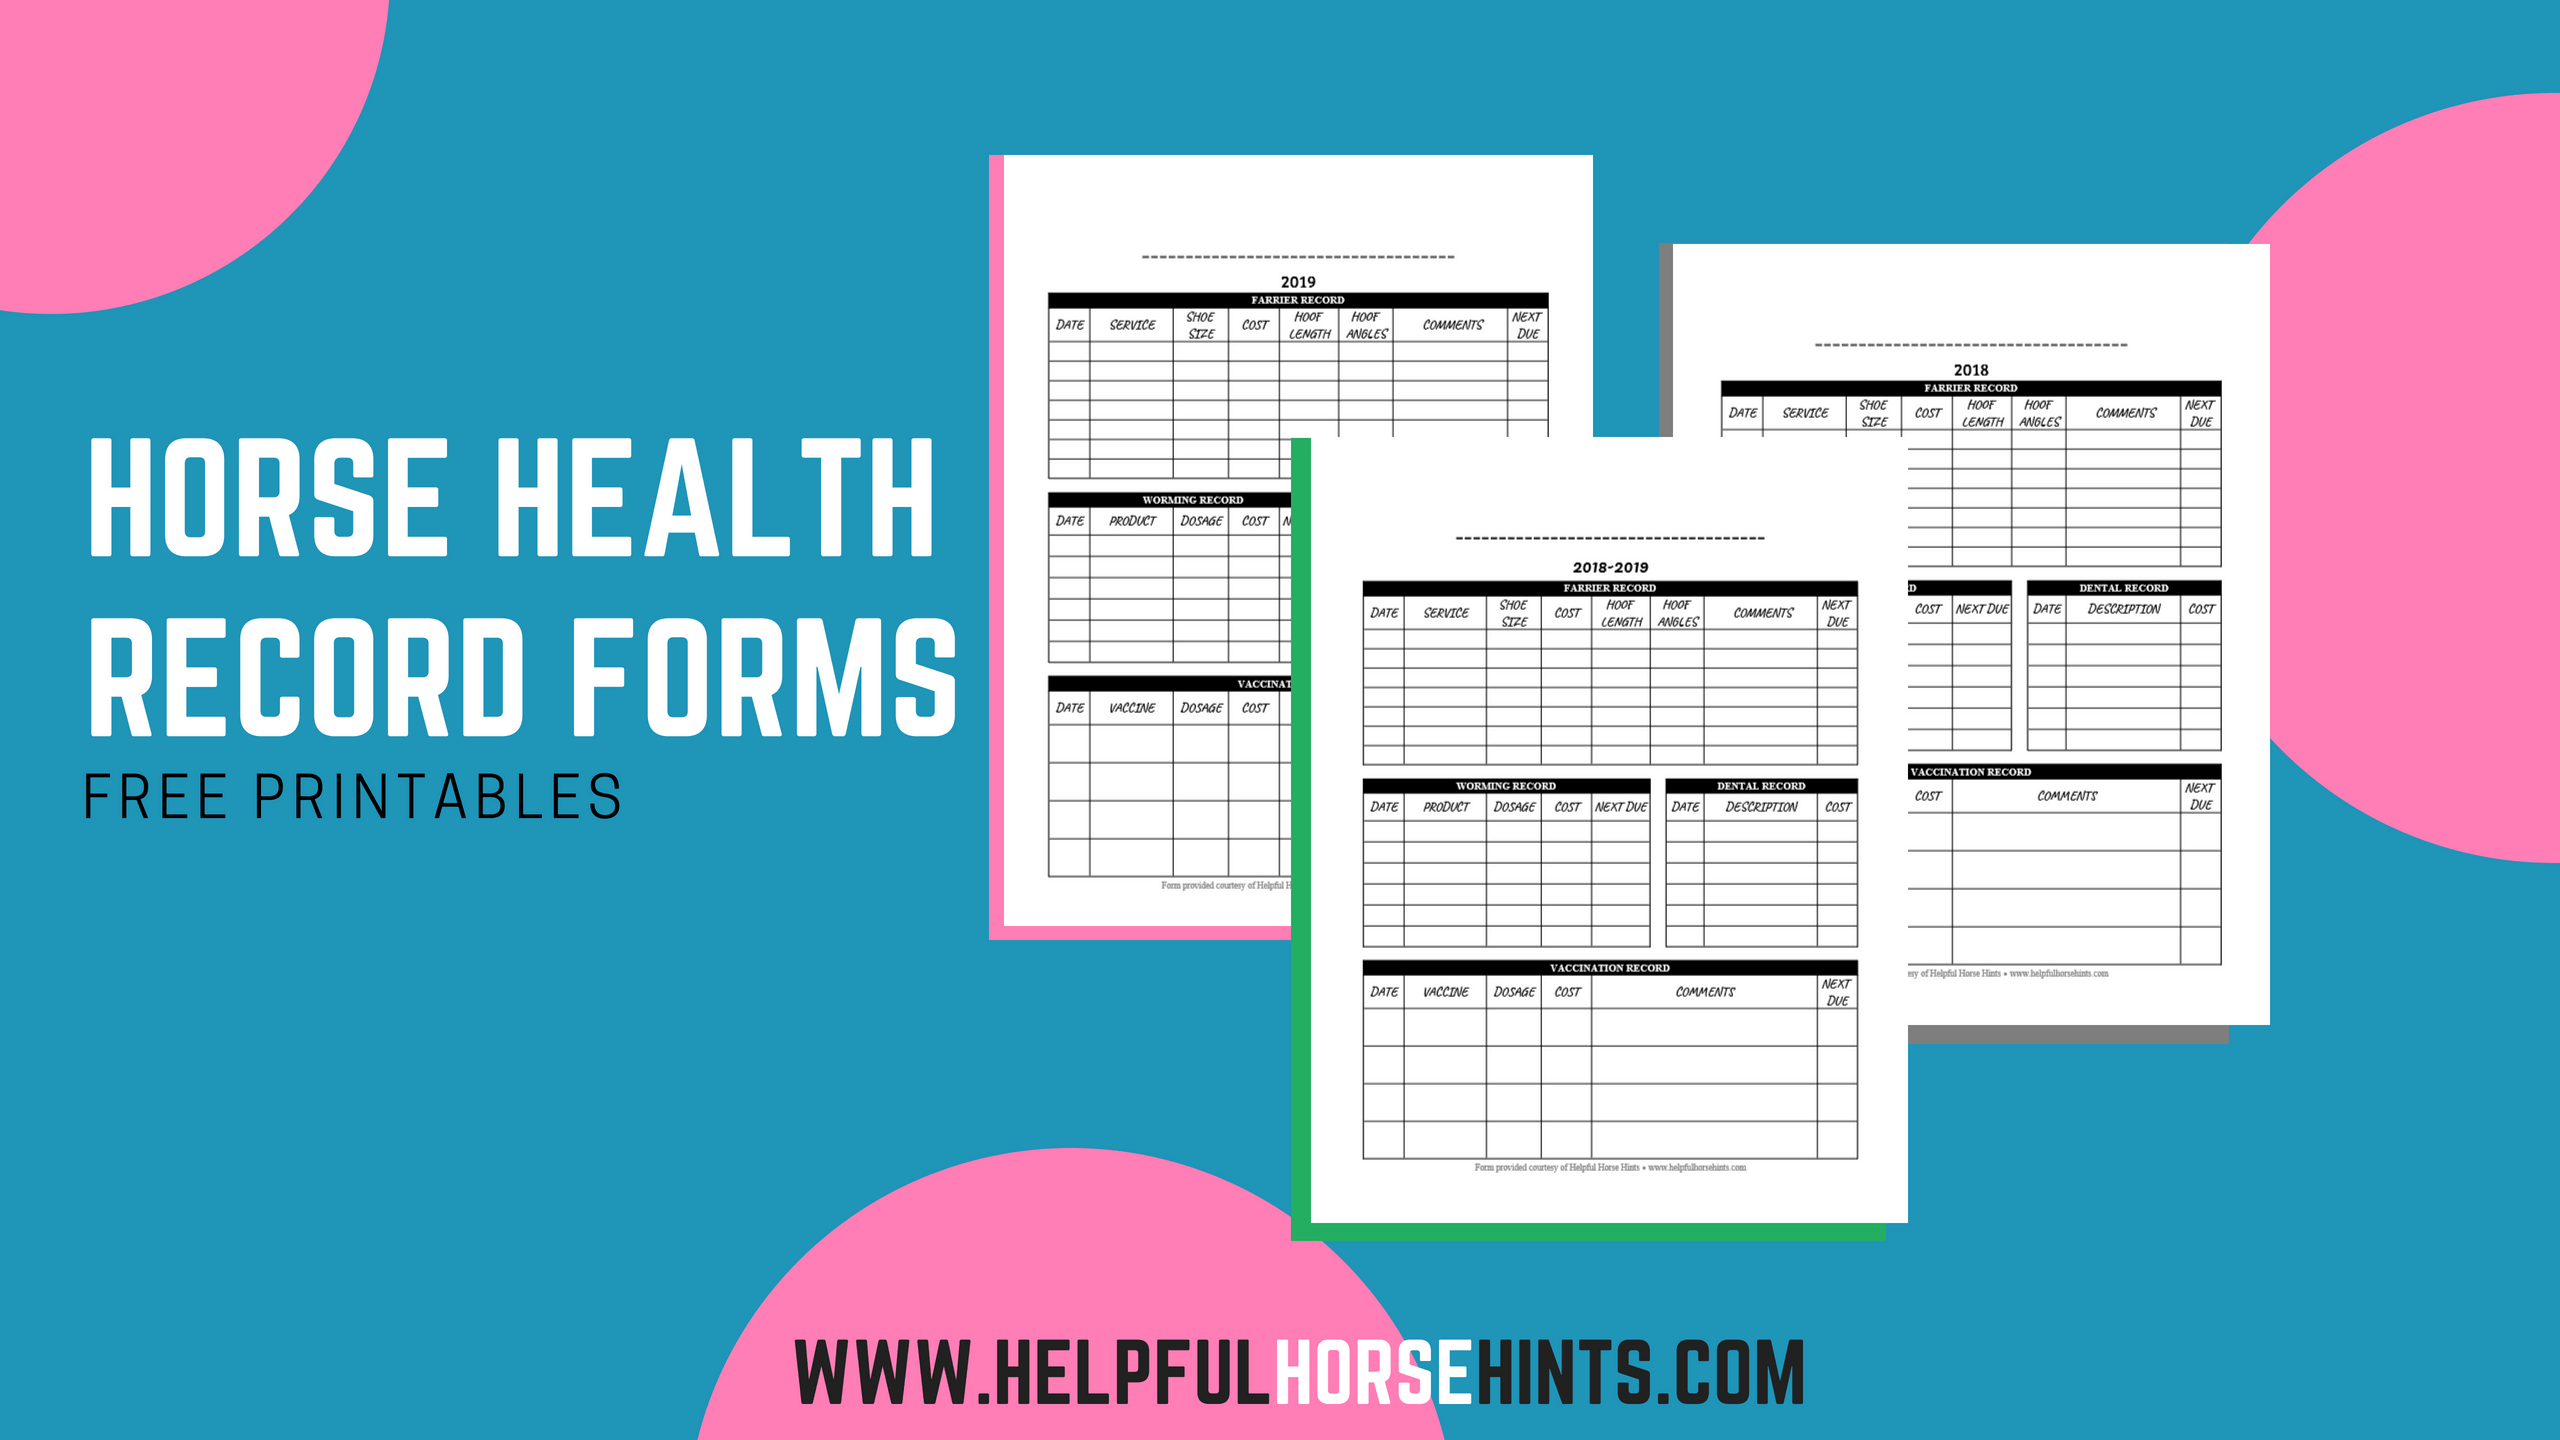 Horse Health Record Forms - Free Printables